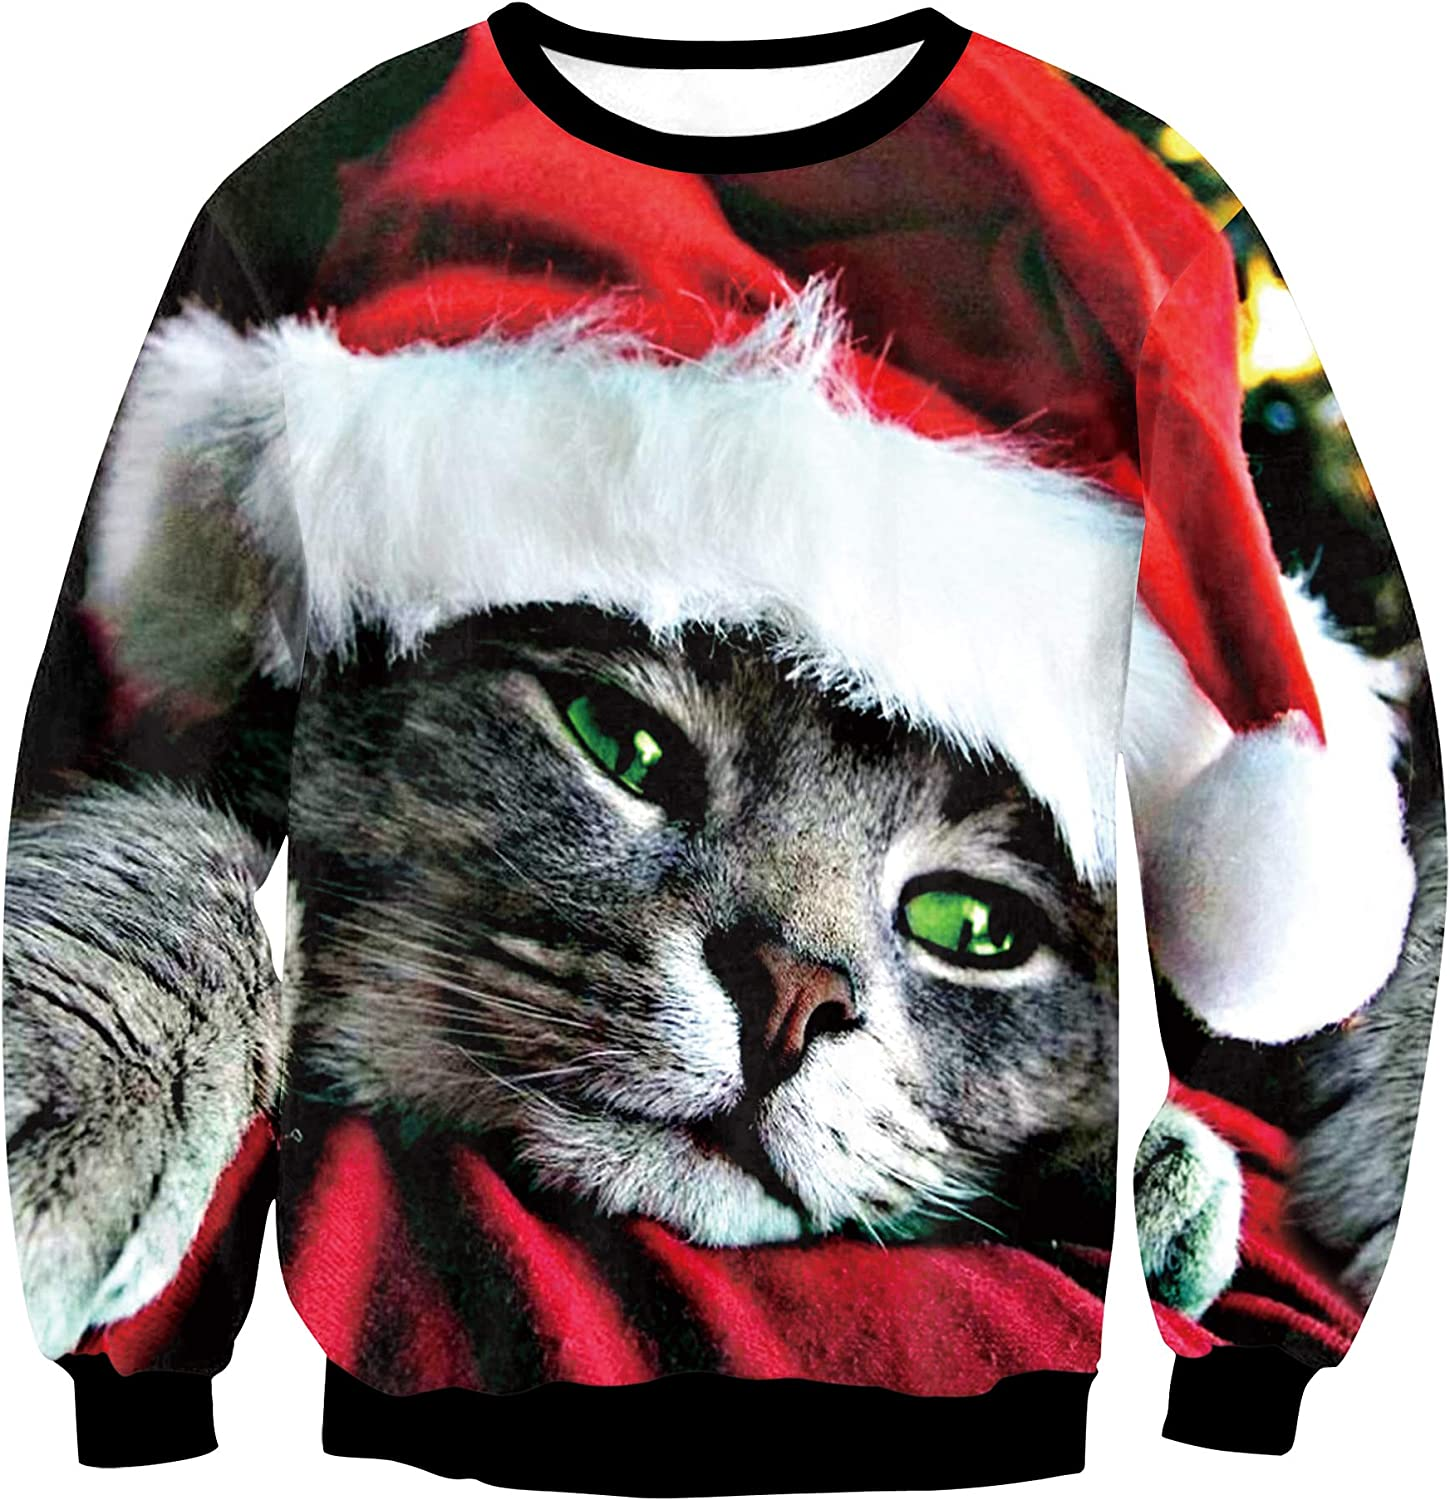 Honeystore Unisex Ugly Christmas Sweater 3D Printed Funny Pullover Sweatshirts